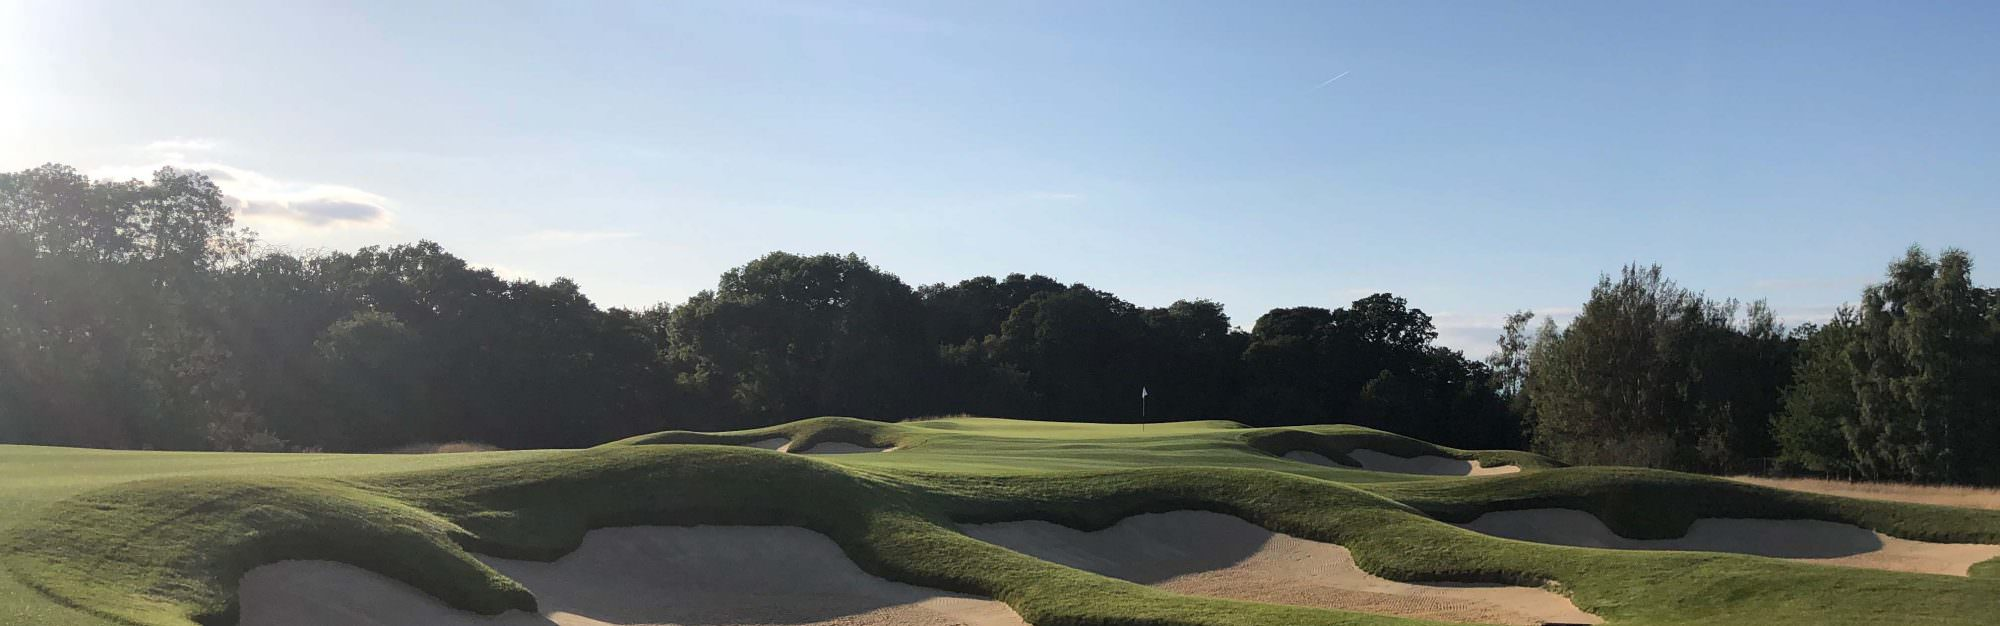 Royal Norwich has a new £10m course – and we've played it